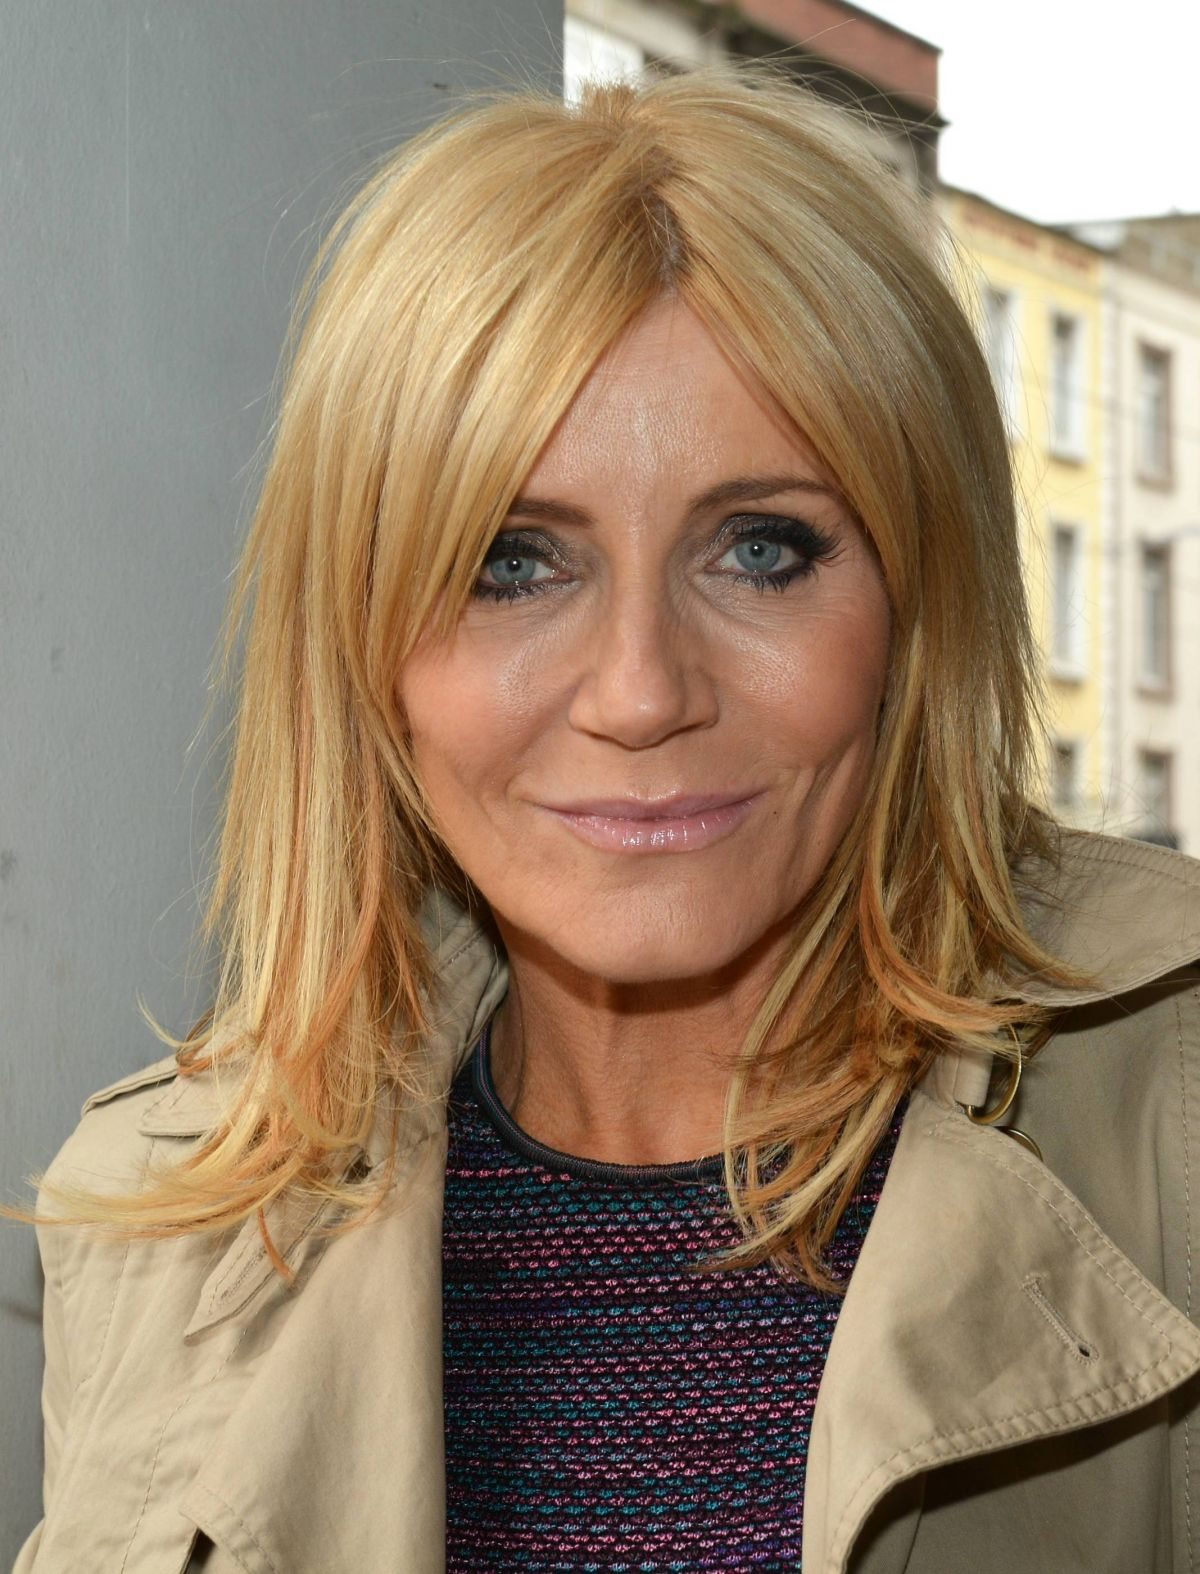 Michelle Collins At Book Signing In Dublin - Celebzz - Celebzz Britney Spears Circus